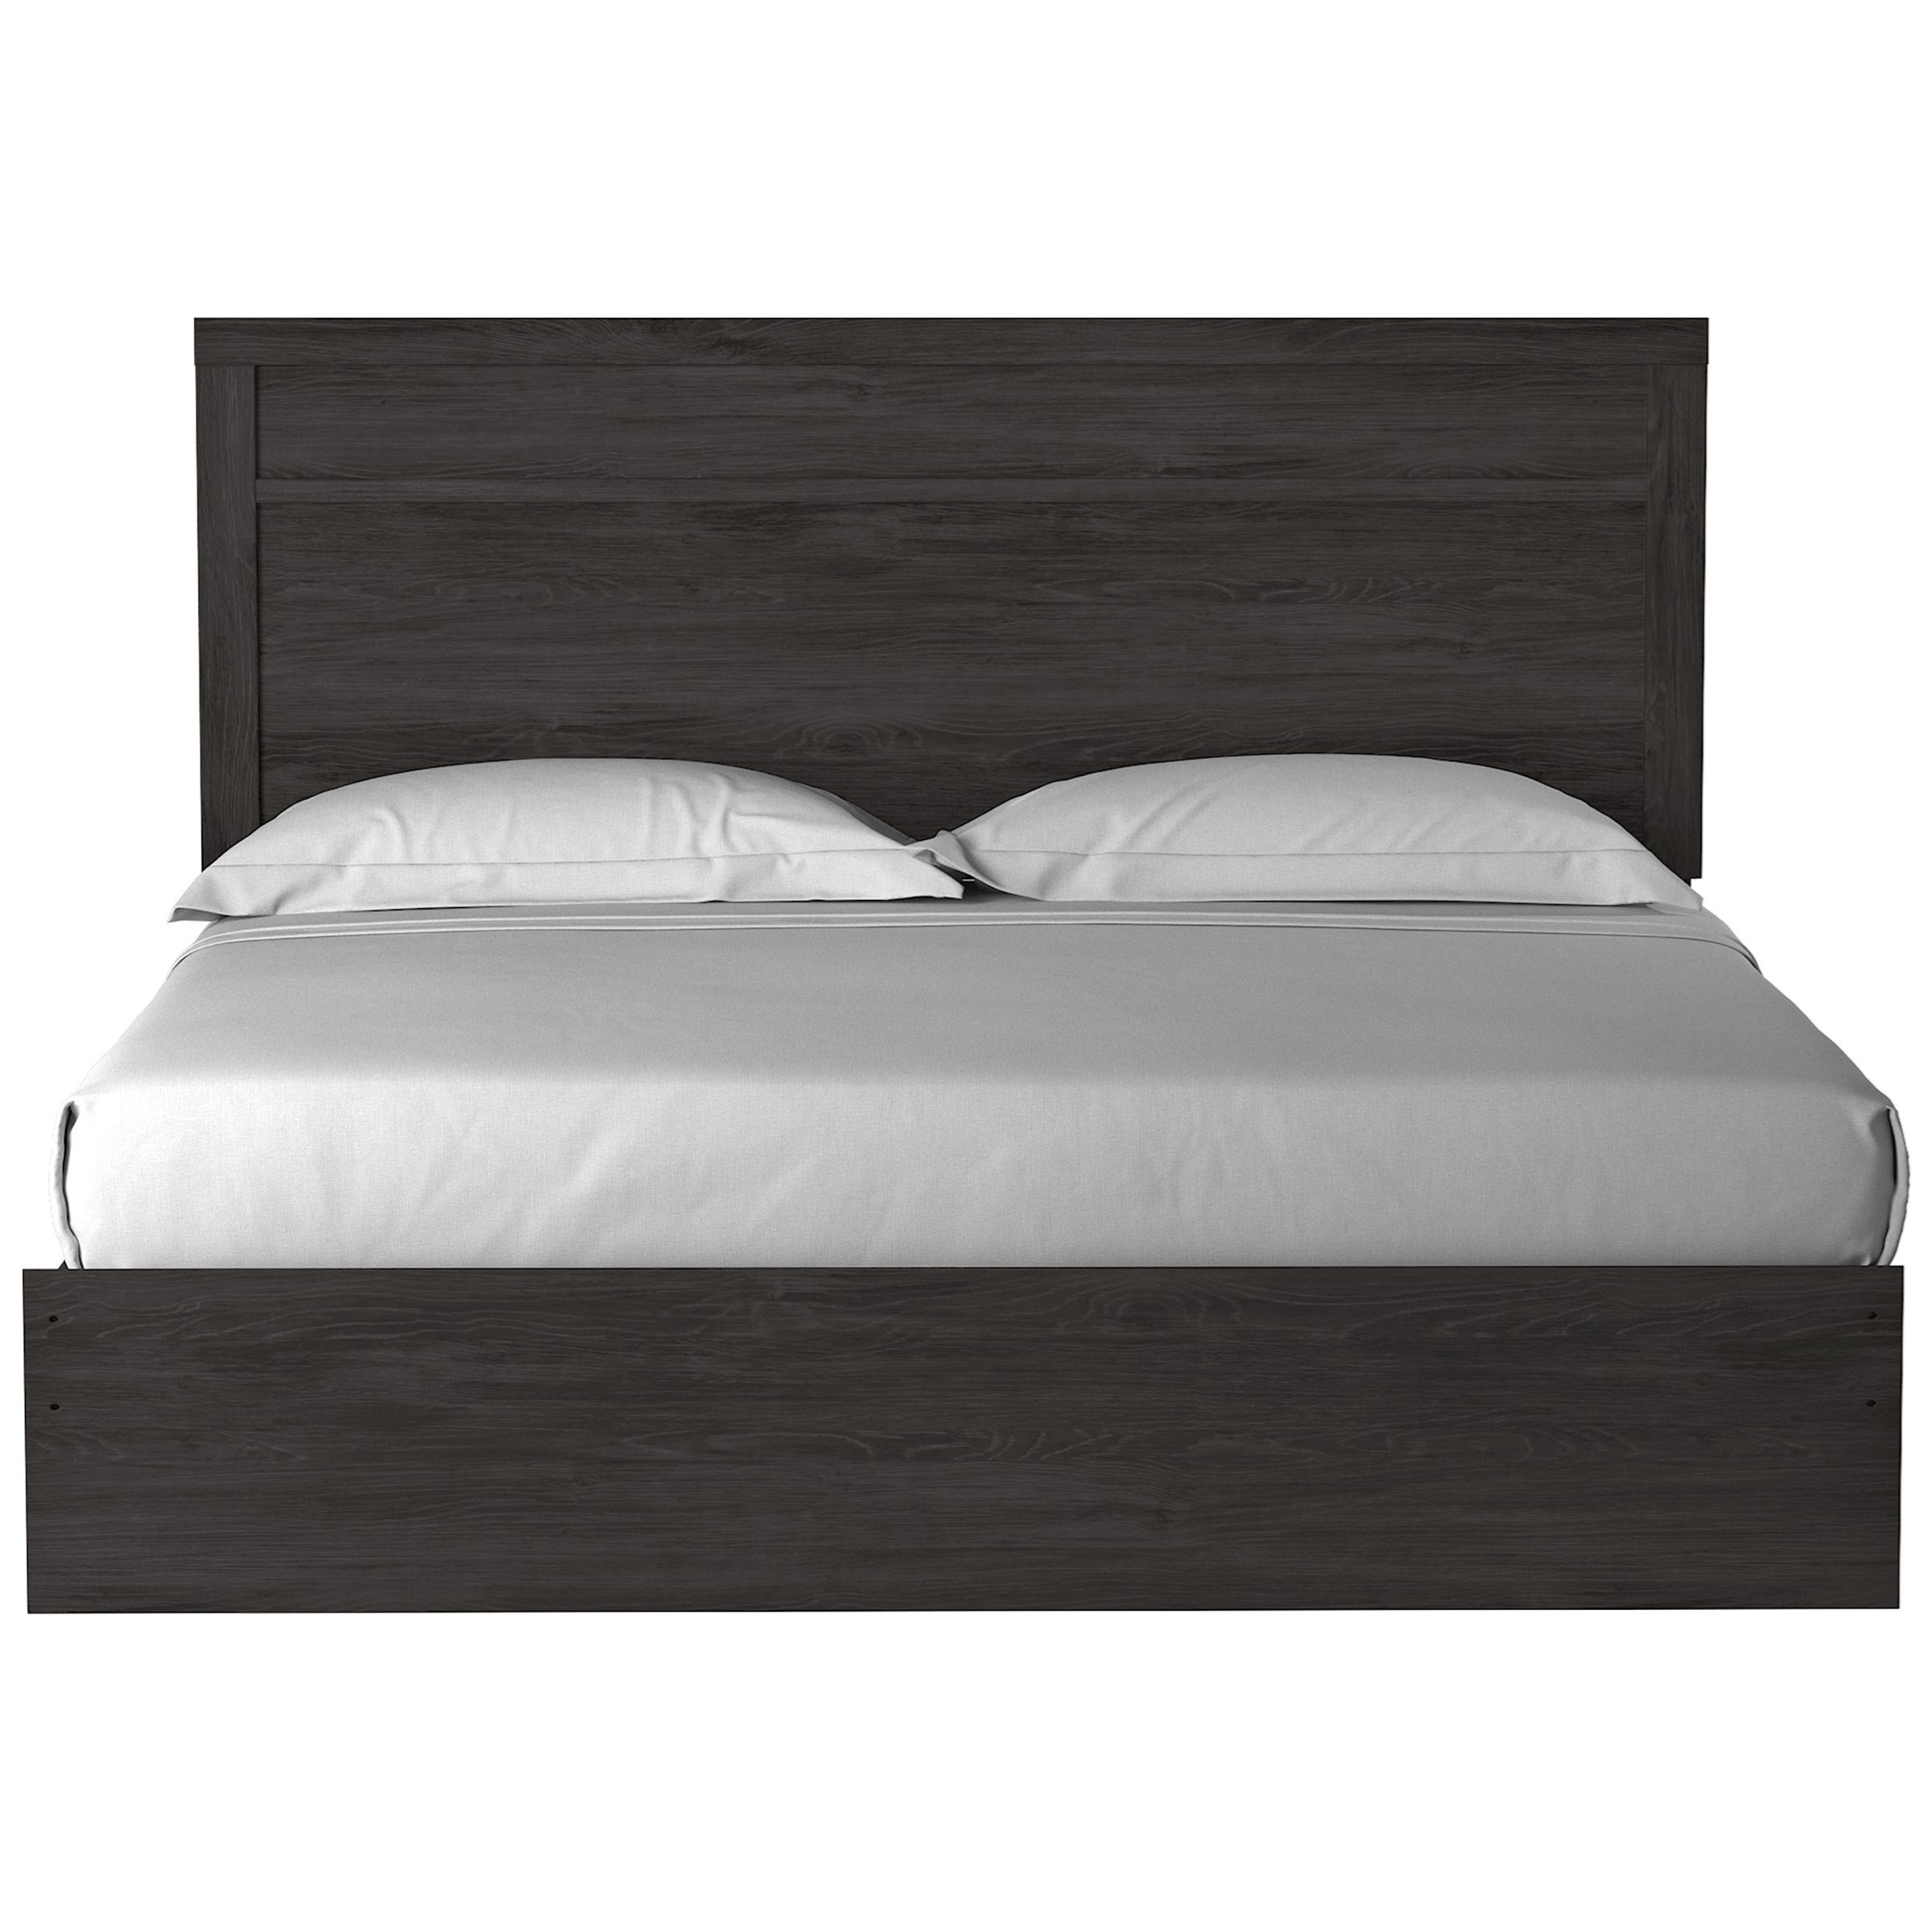 Belachime King Panel Bed by Signature Design by Ashley at Zak's Warehouse Clearance Center